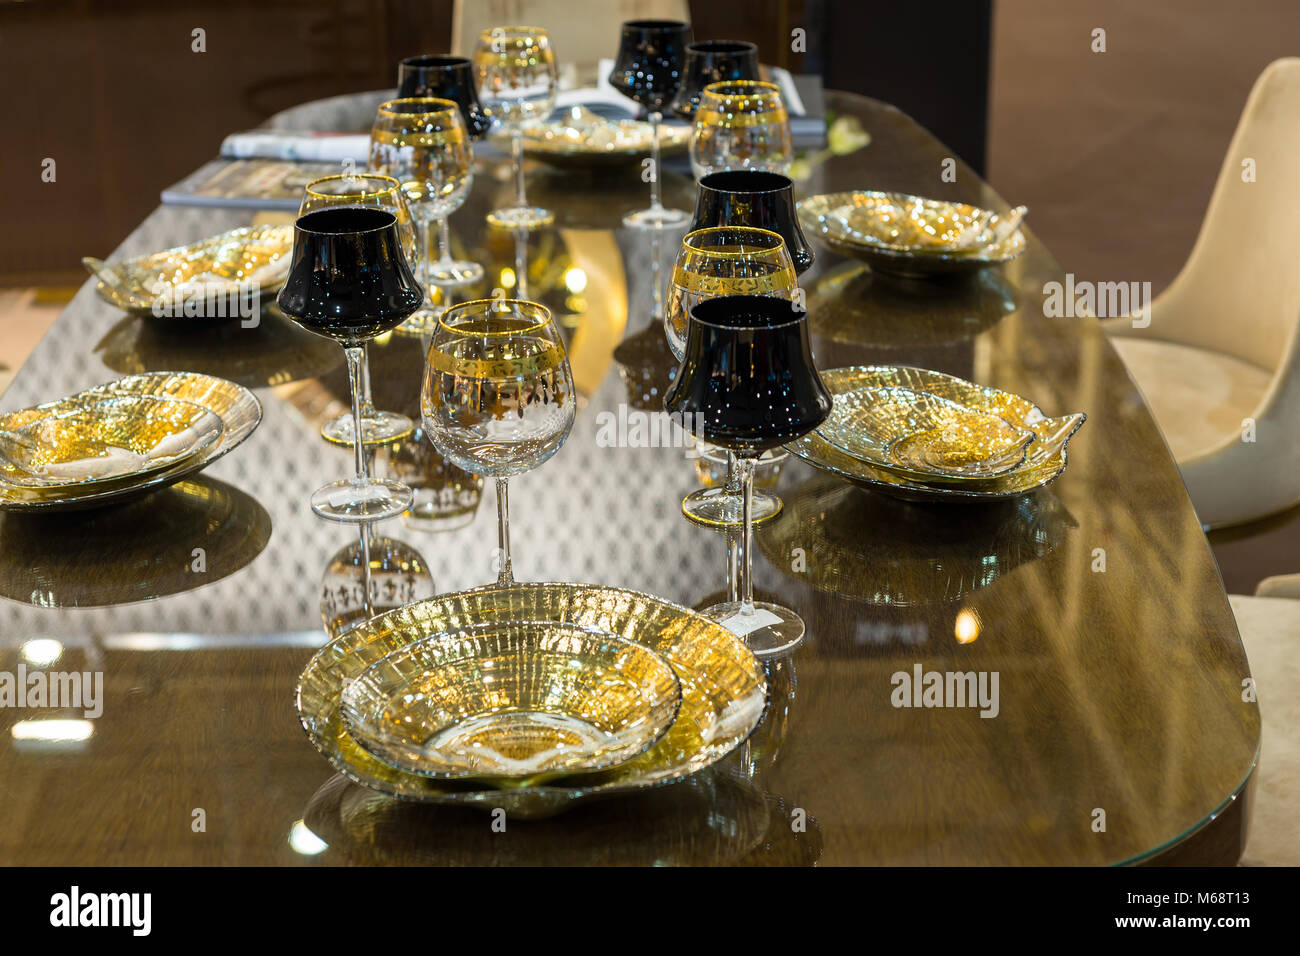 Table setting of glamorous glasses and plates in gold and black color & Table setting of glamorous glasses and plates in gold and black ...